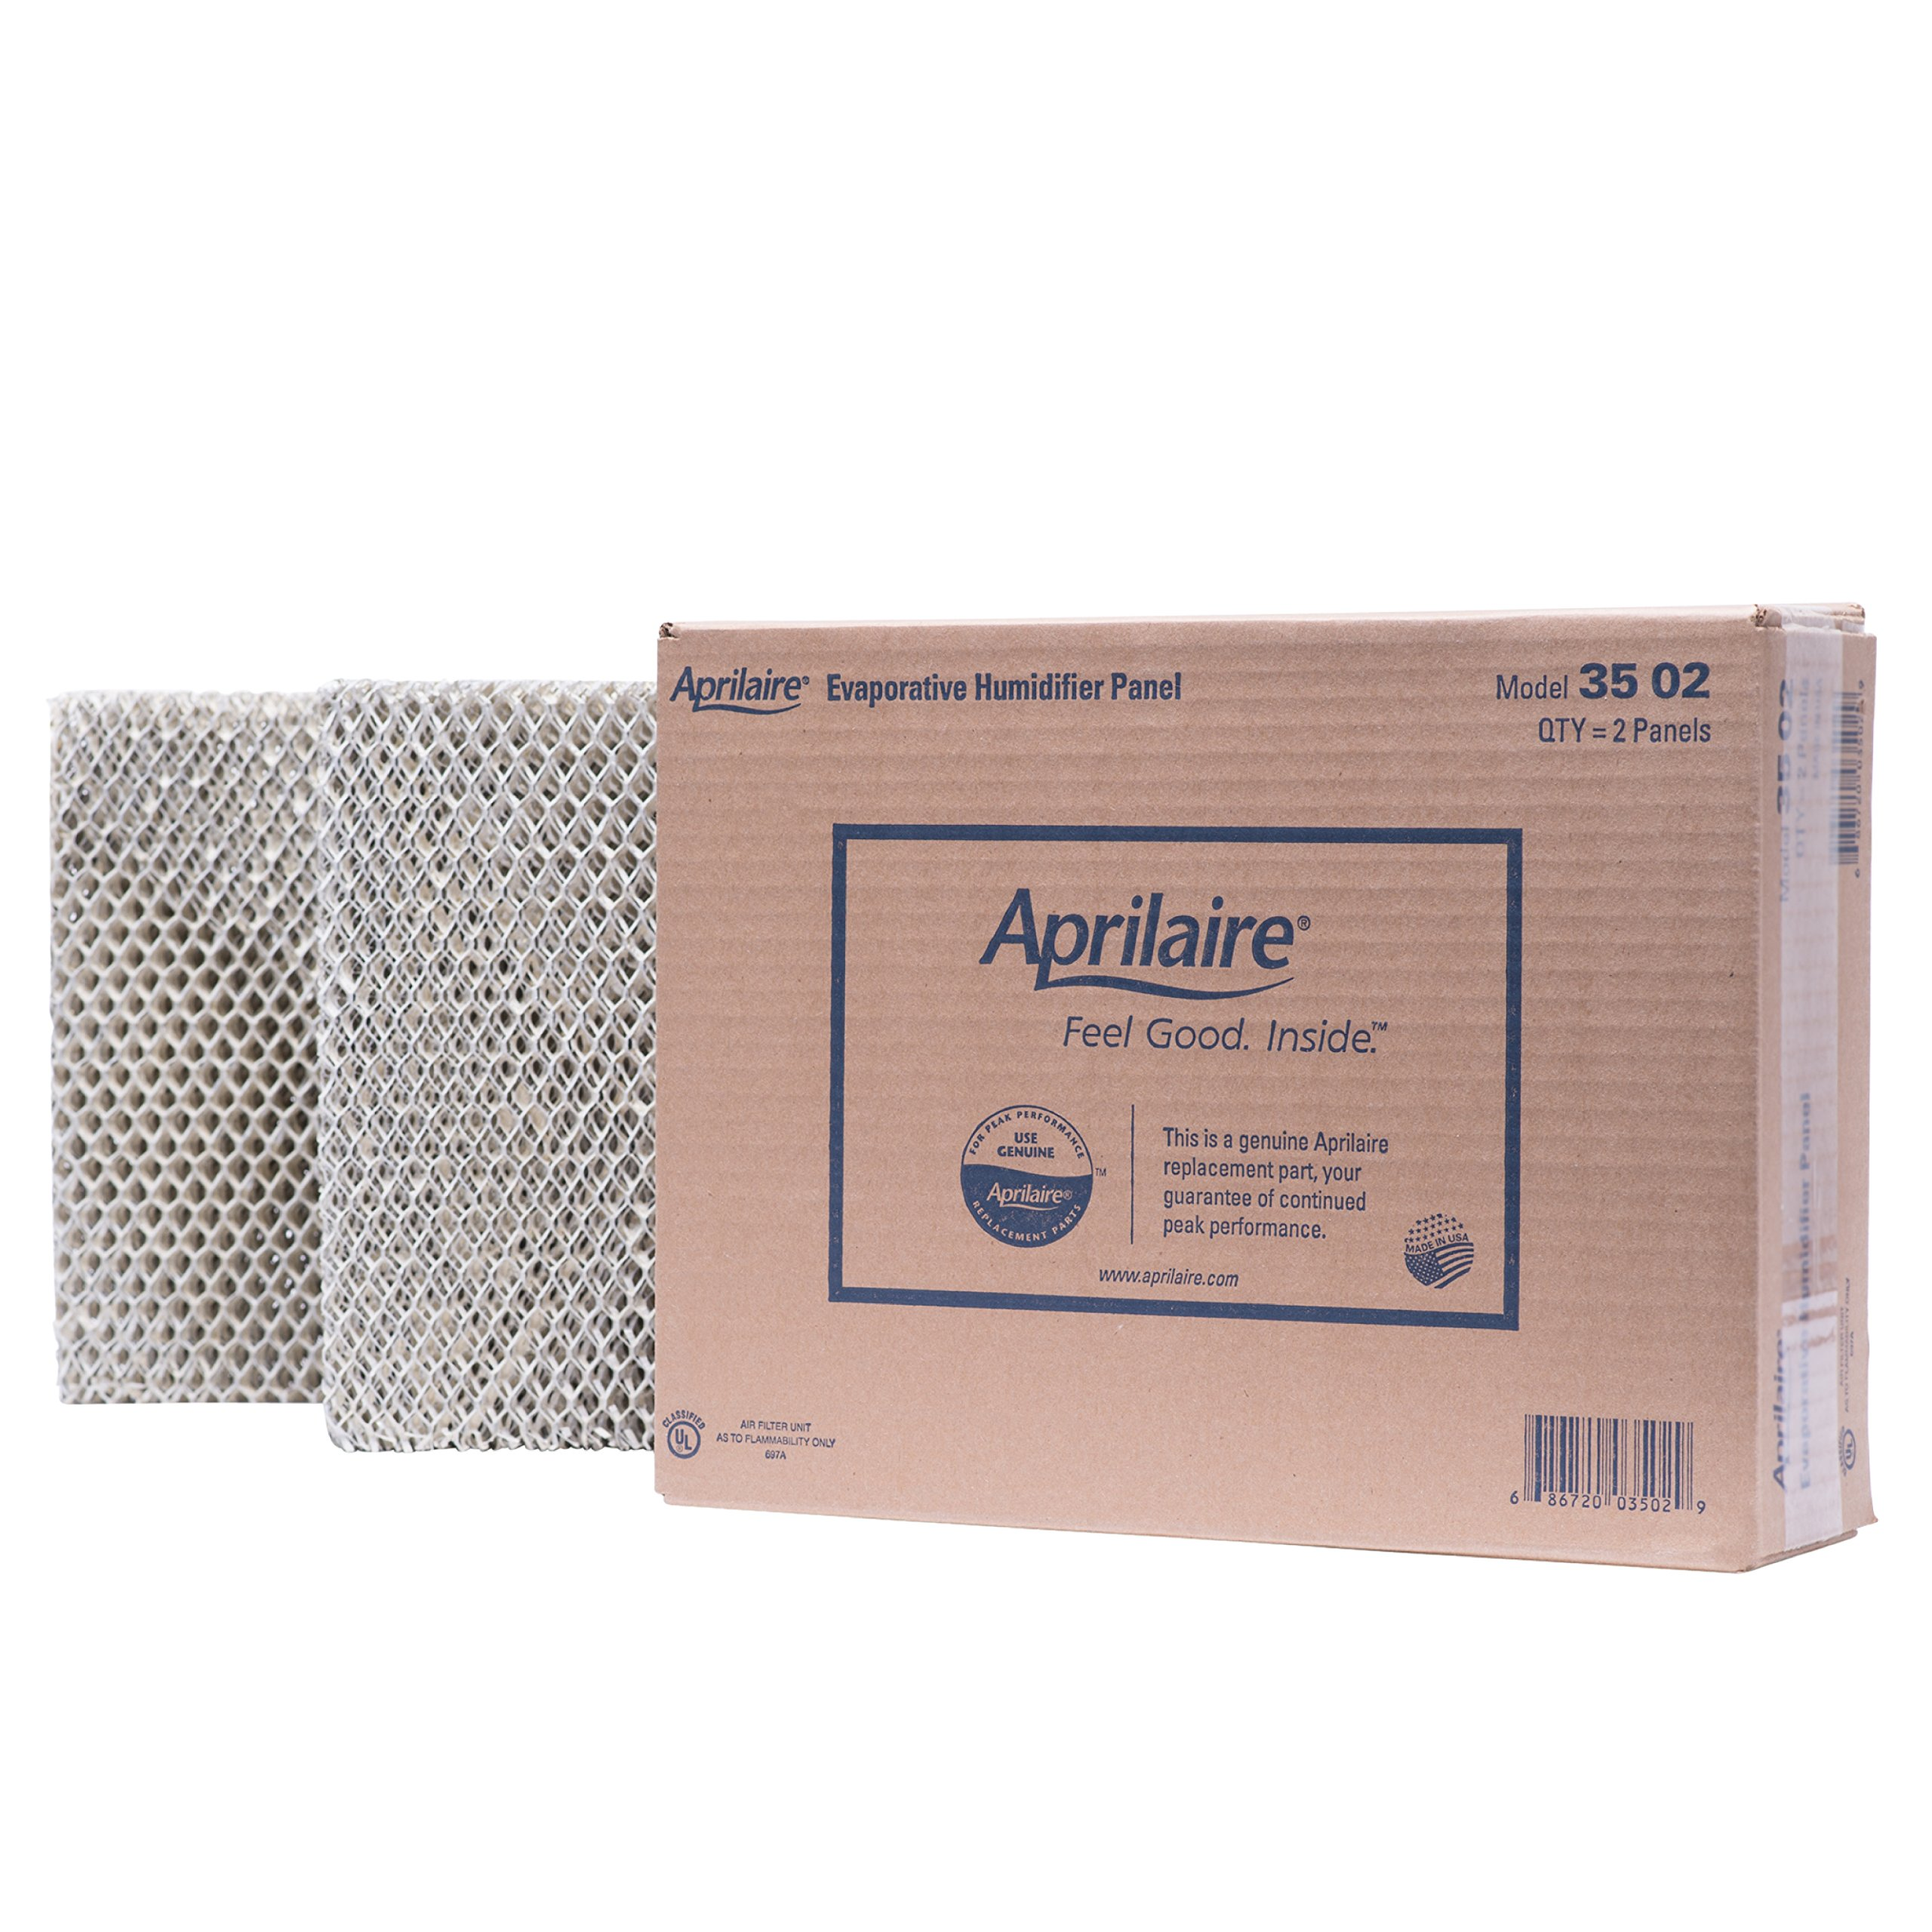 Aprilaire 35 Water Panel for Humidifier Models 350, 360, 560, 568, 600, 700, 760, 768; Pack of 2 by Aprilaire